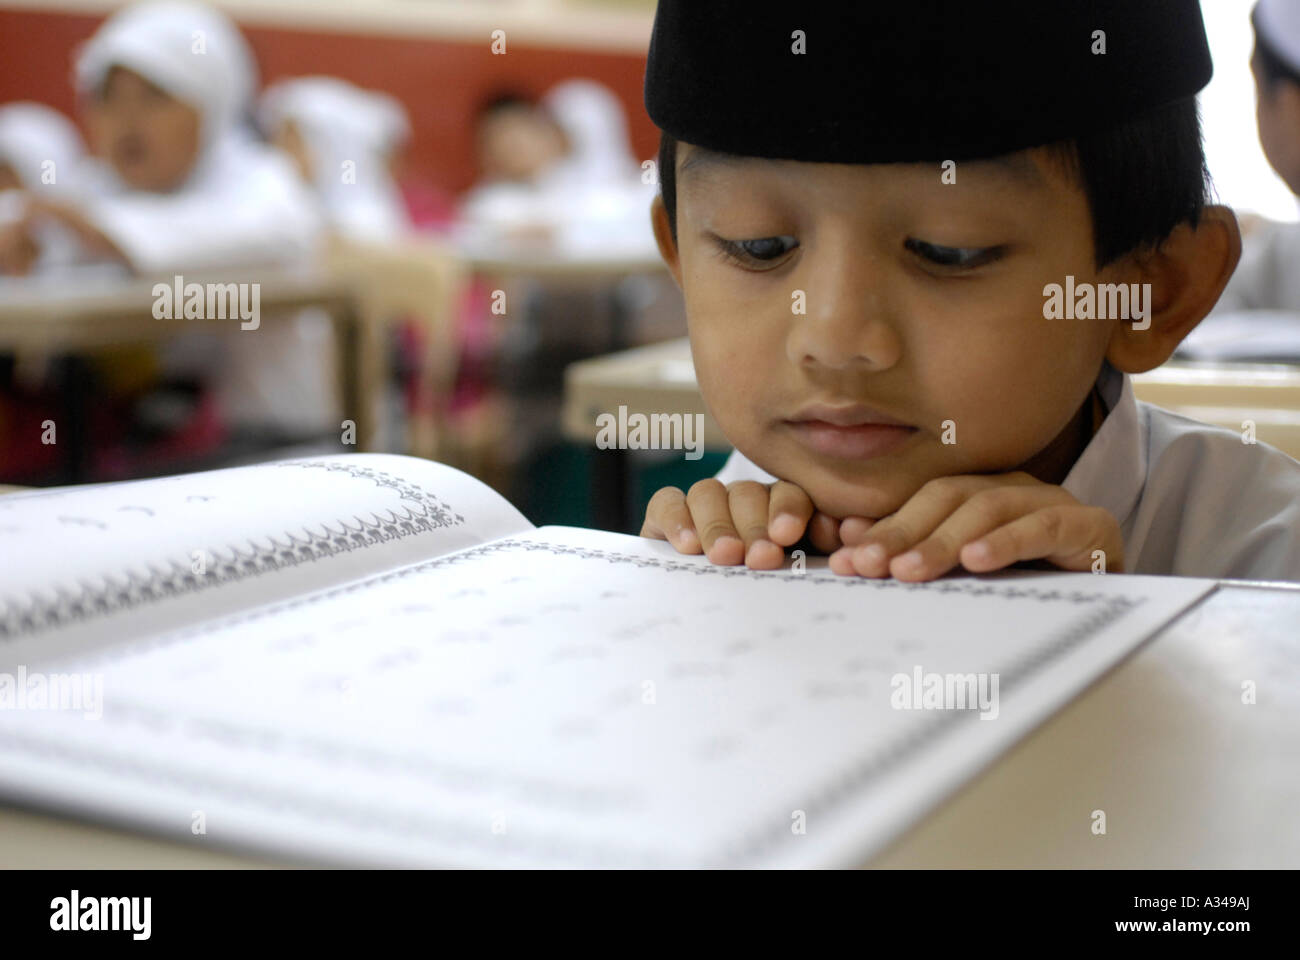 Primary one and kindergarten students studying a simplified version of the Koran at a  Muslim school, Kuala Lumpur, - Stock Image